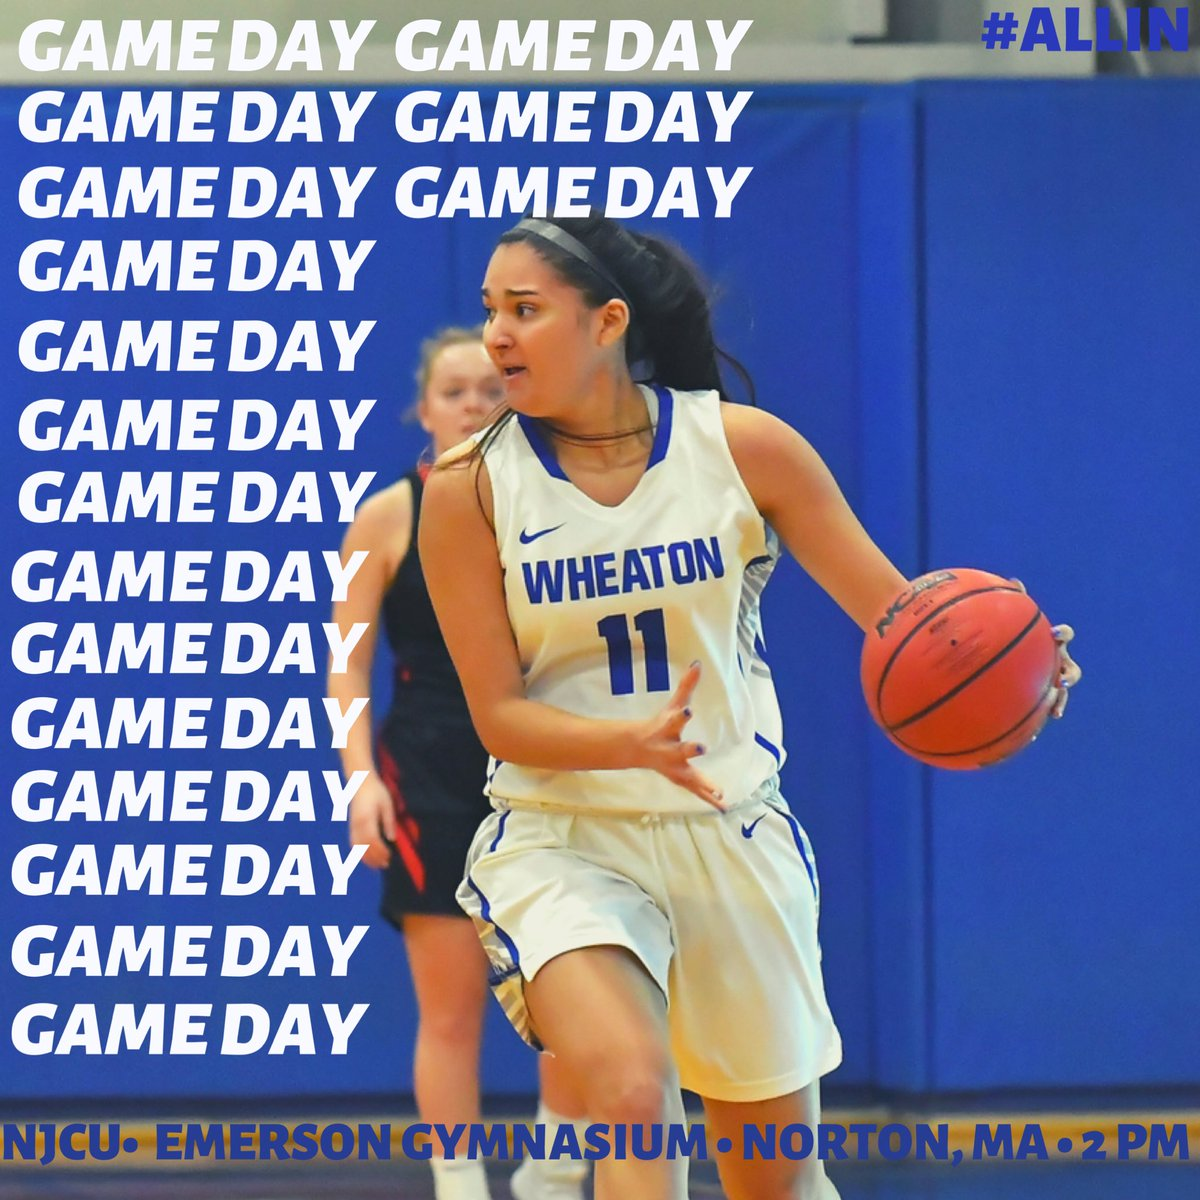 Tip-off @ 2 PM here in Norton! #ALLIN <br>http://pic.twitter.com/Qp5uTxnK5U